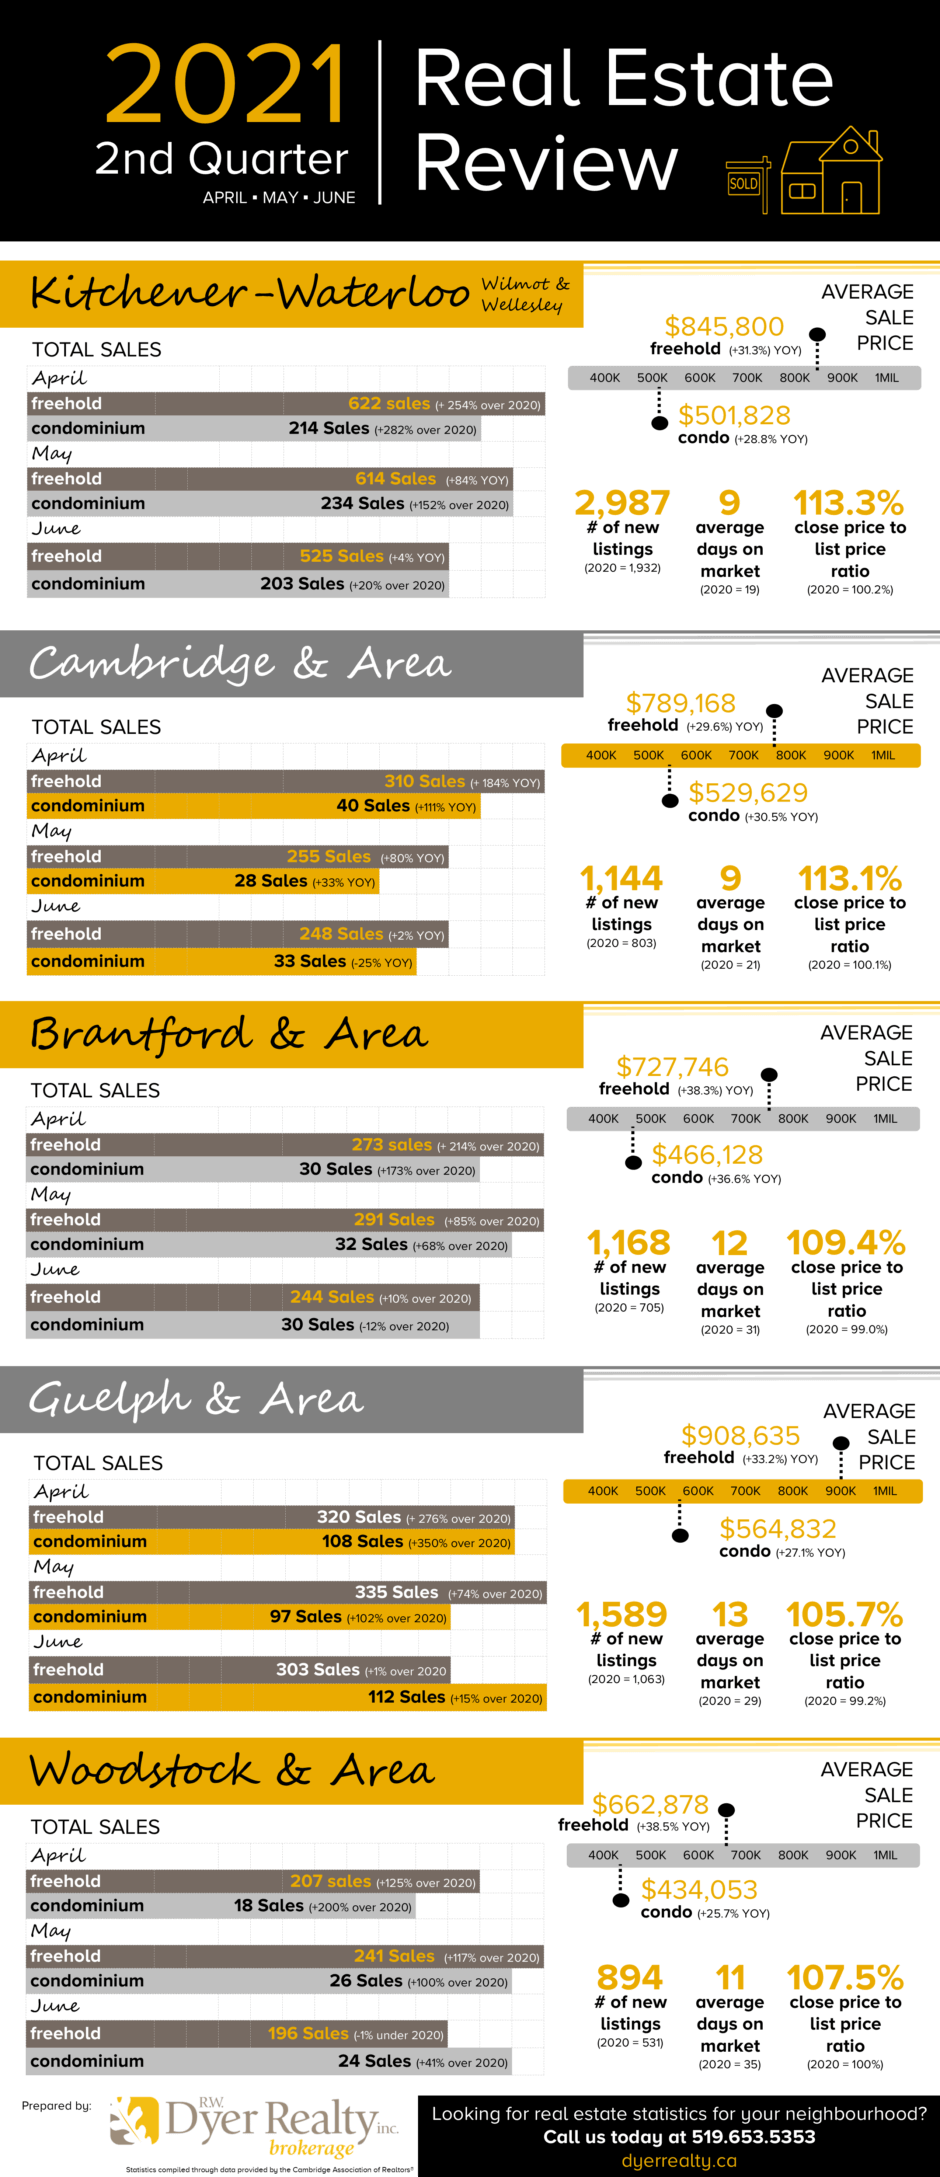 Real Estate Sales Statistics for the second quarter of 2021 for Kitchener-Waterloo, Cambridge, Guelph, Brantford, Woodstock and areas.